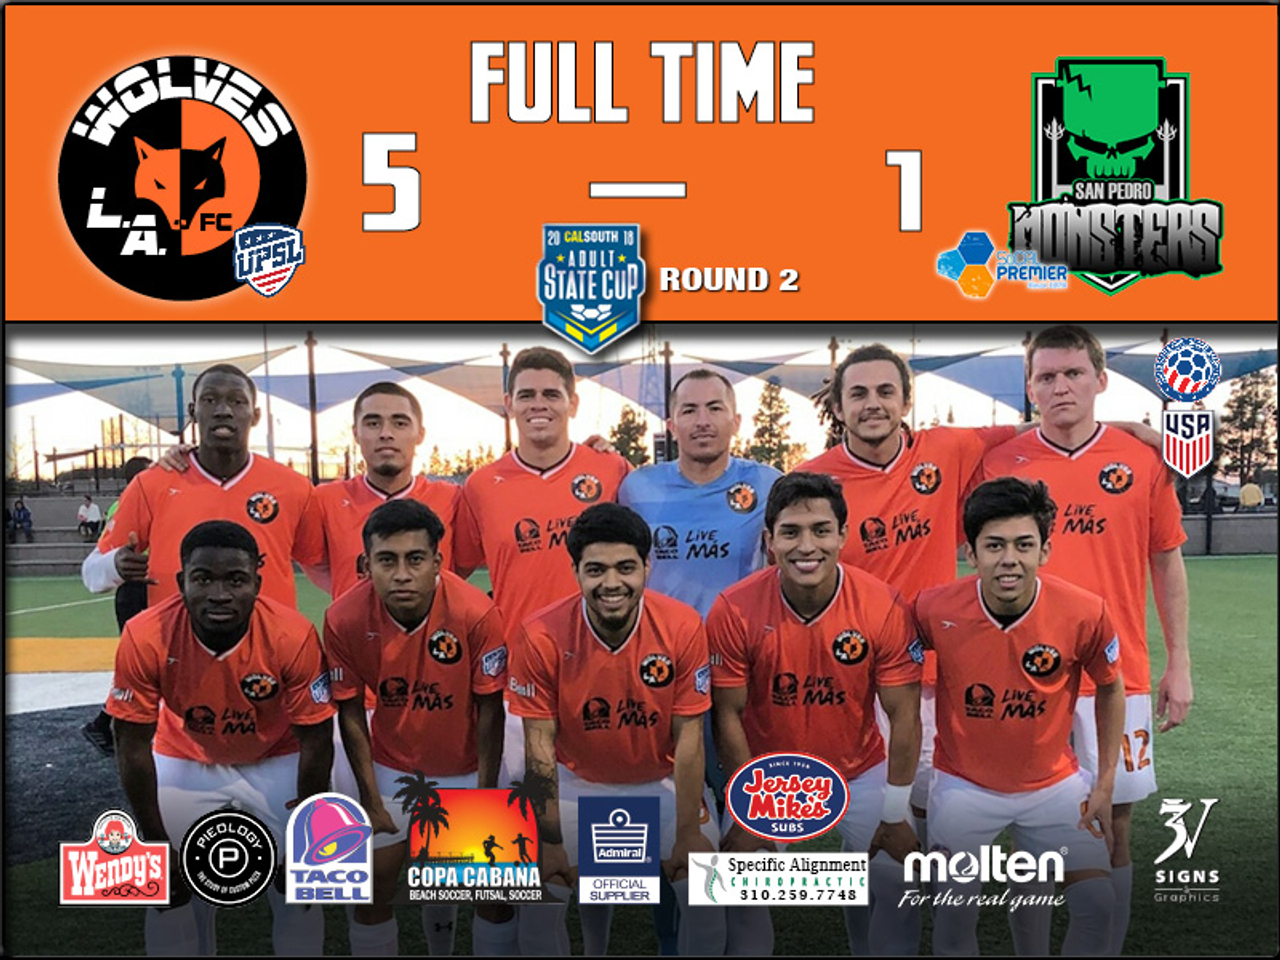 L.A. WOLVES FC ADVANCE TO ROUND 3 IN STATE CUP | L.A